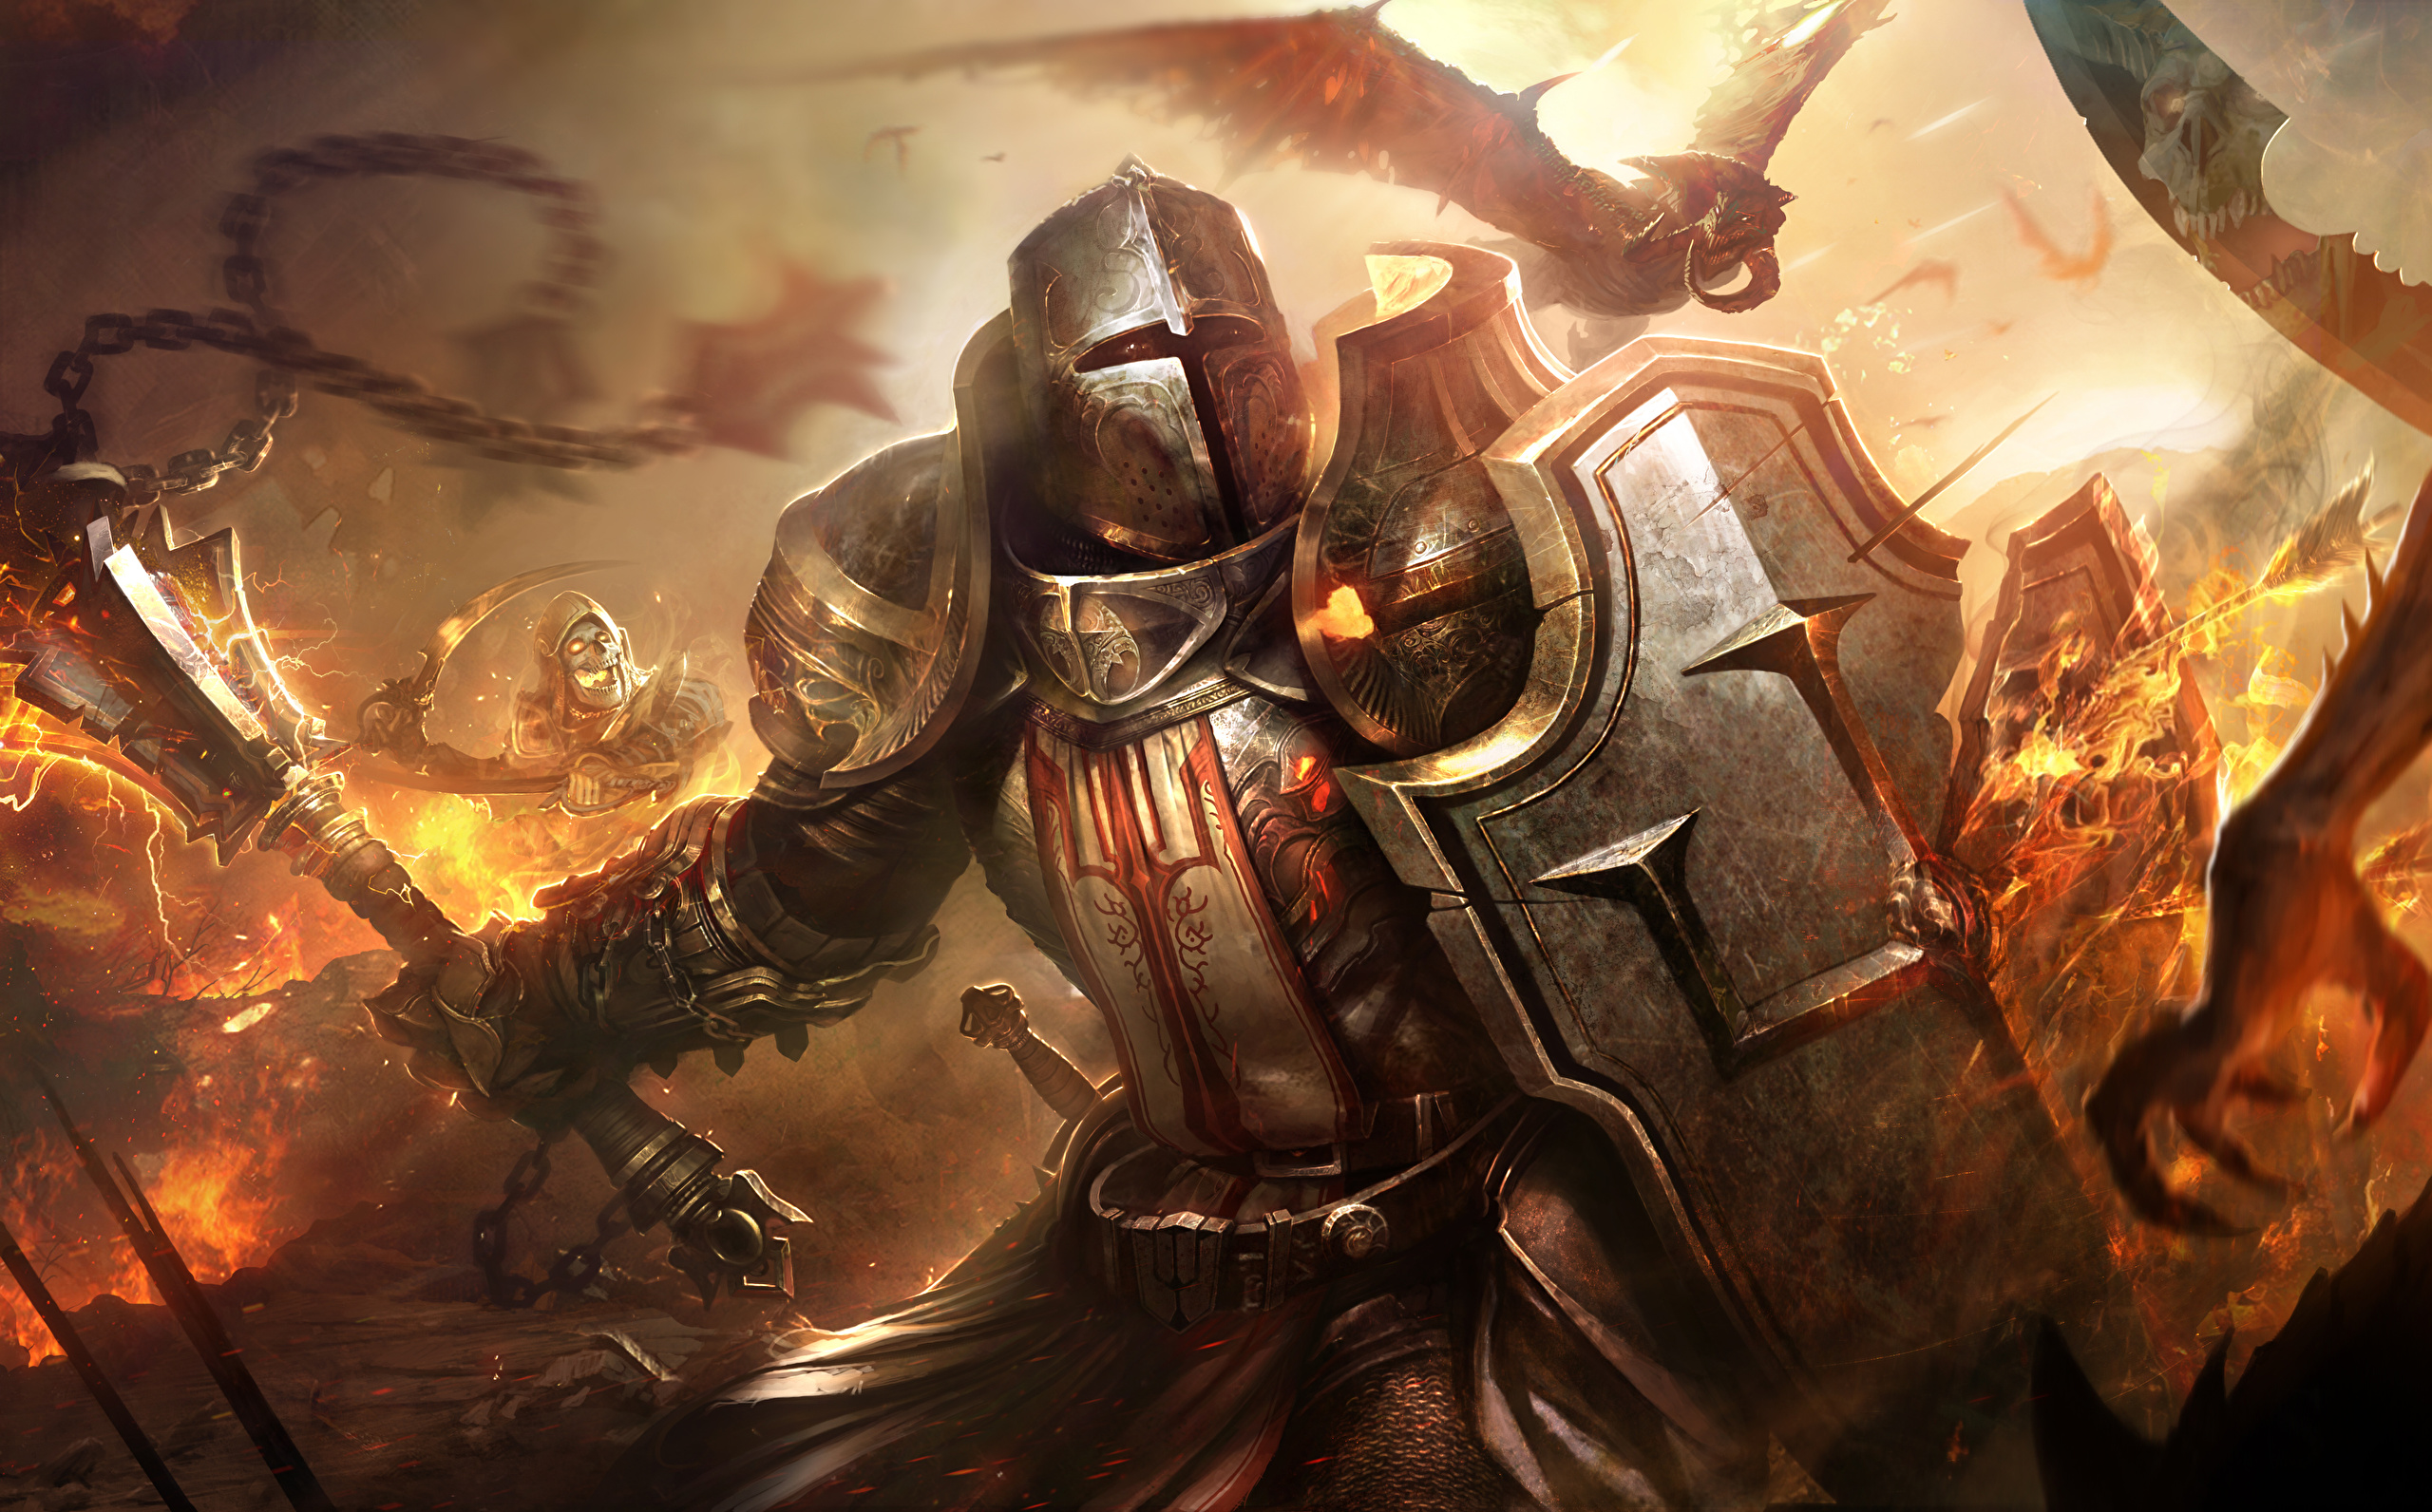 Pictures Armor Knight Shield Dragons Helmet Fantasy Games 2560x1592 They can also be dropped by getting enough dragon weight. pictures armor knight shield dragons